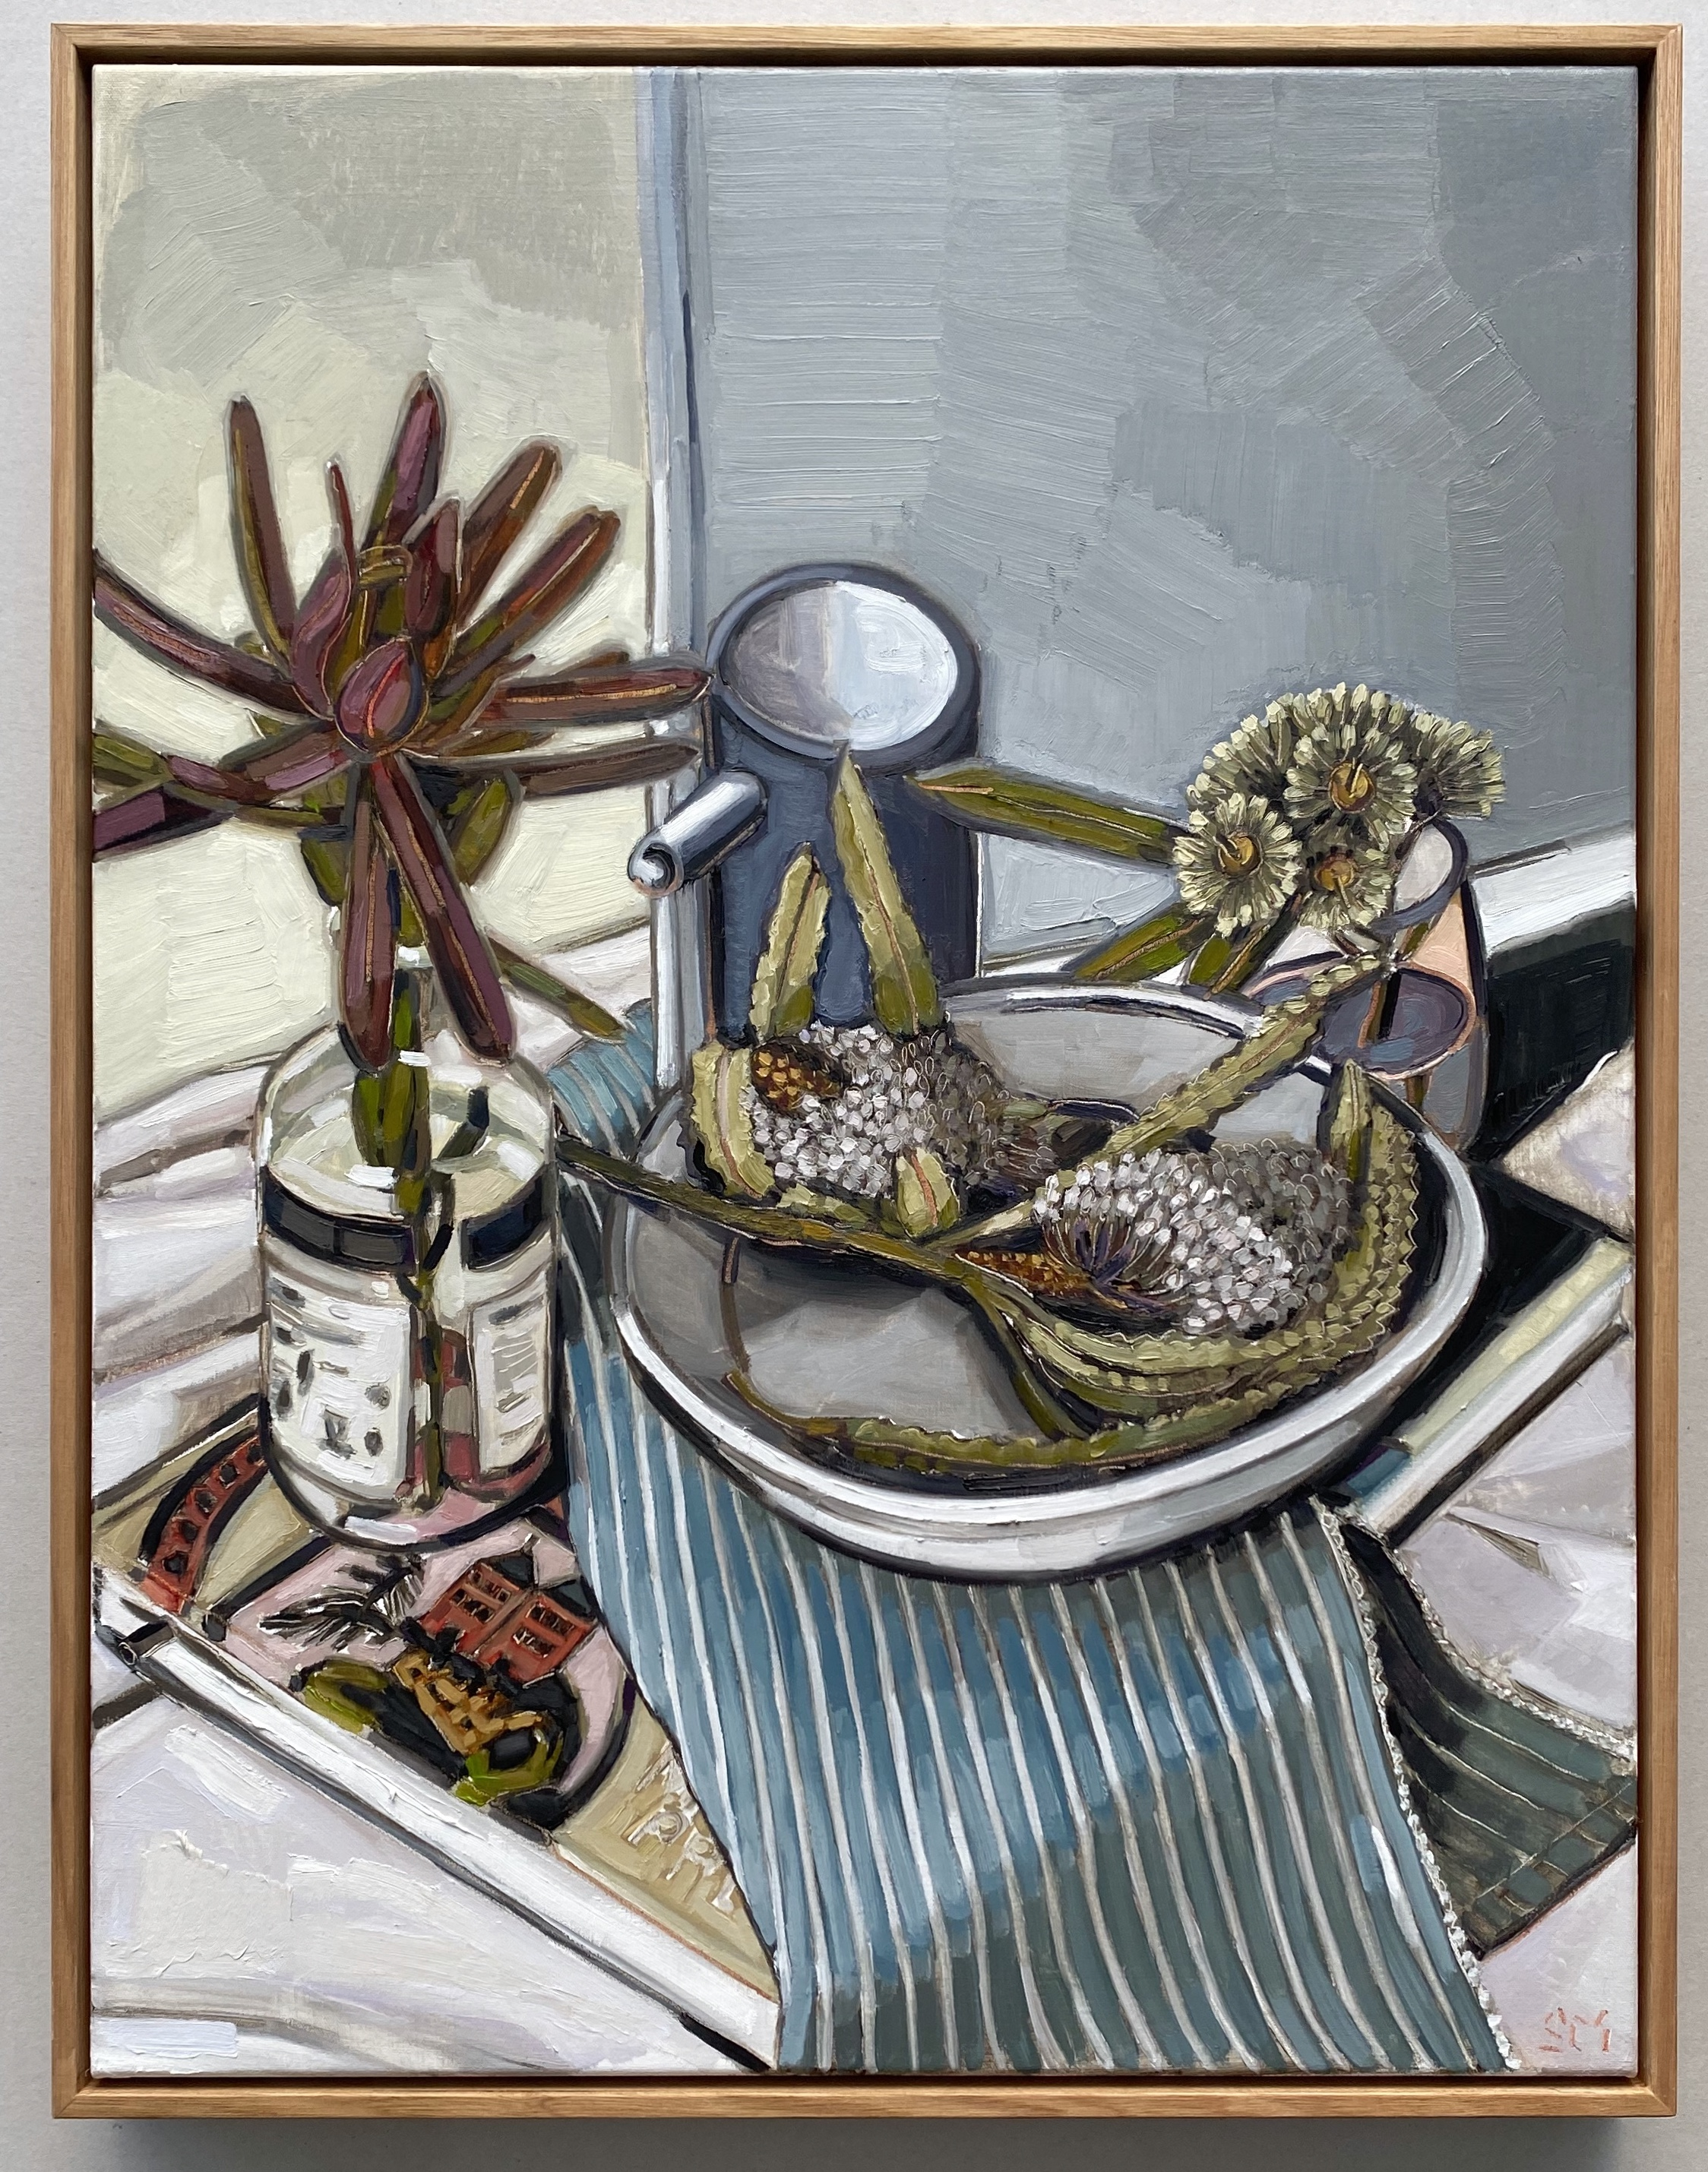 sam michelle 'margaret preston book & banksia' 68x53cm